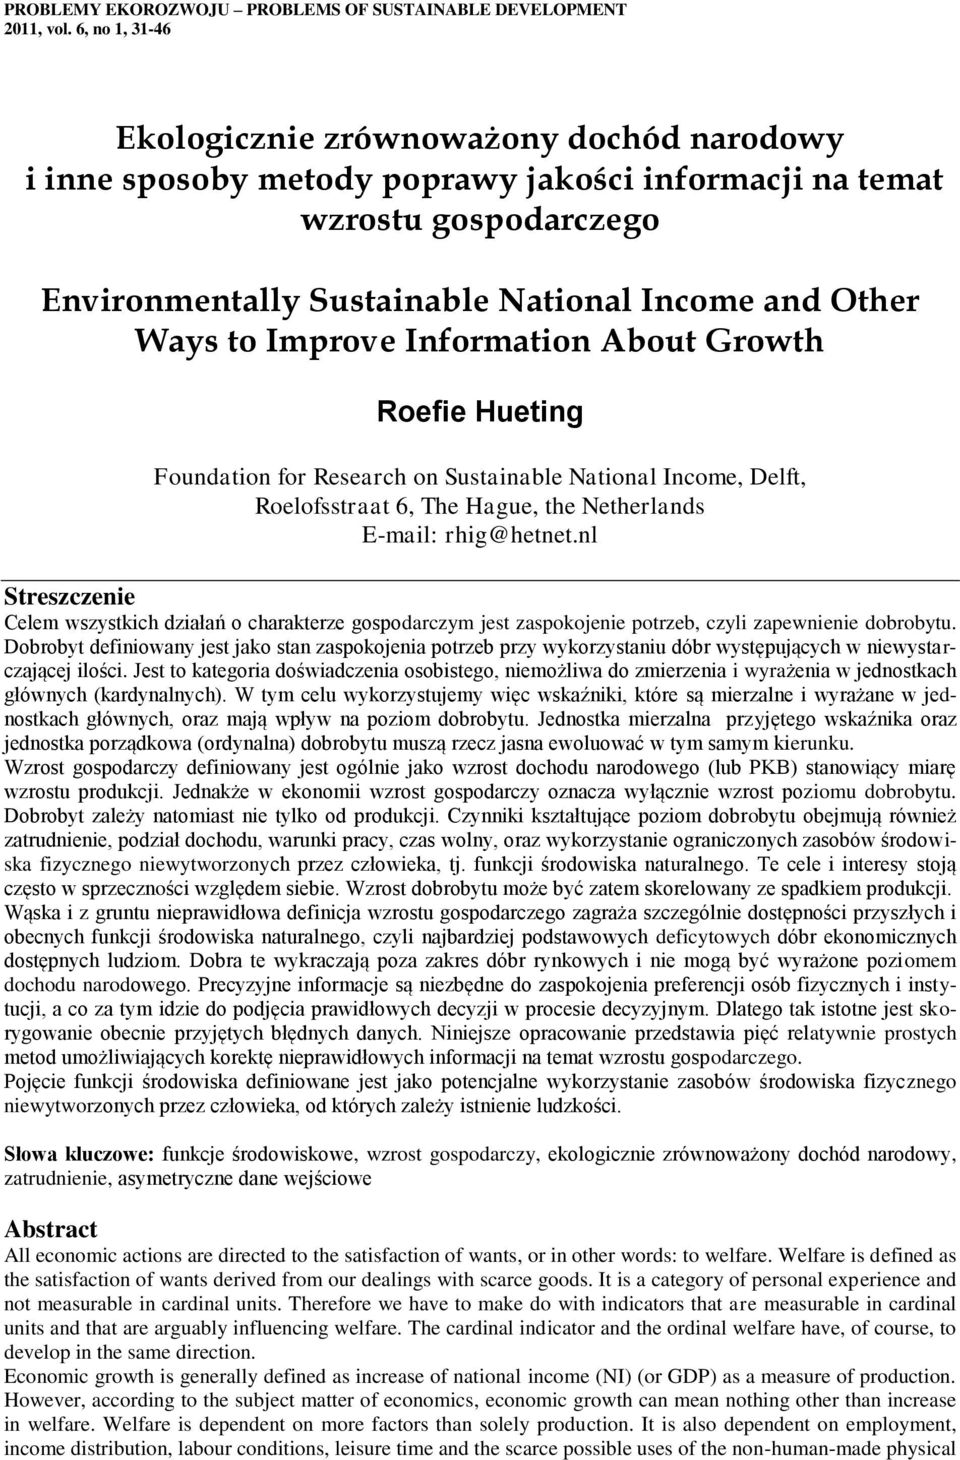 Improve Information About Growth Roefie Hueting Foundation for Research on Sustainable National Income, Delft, Roelofsstraat 6, The Hague, the Netherlands E-mail: rhig@hetnet.